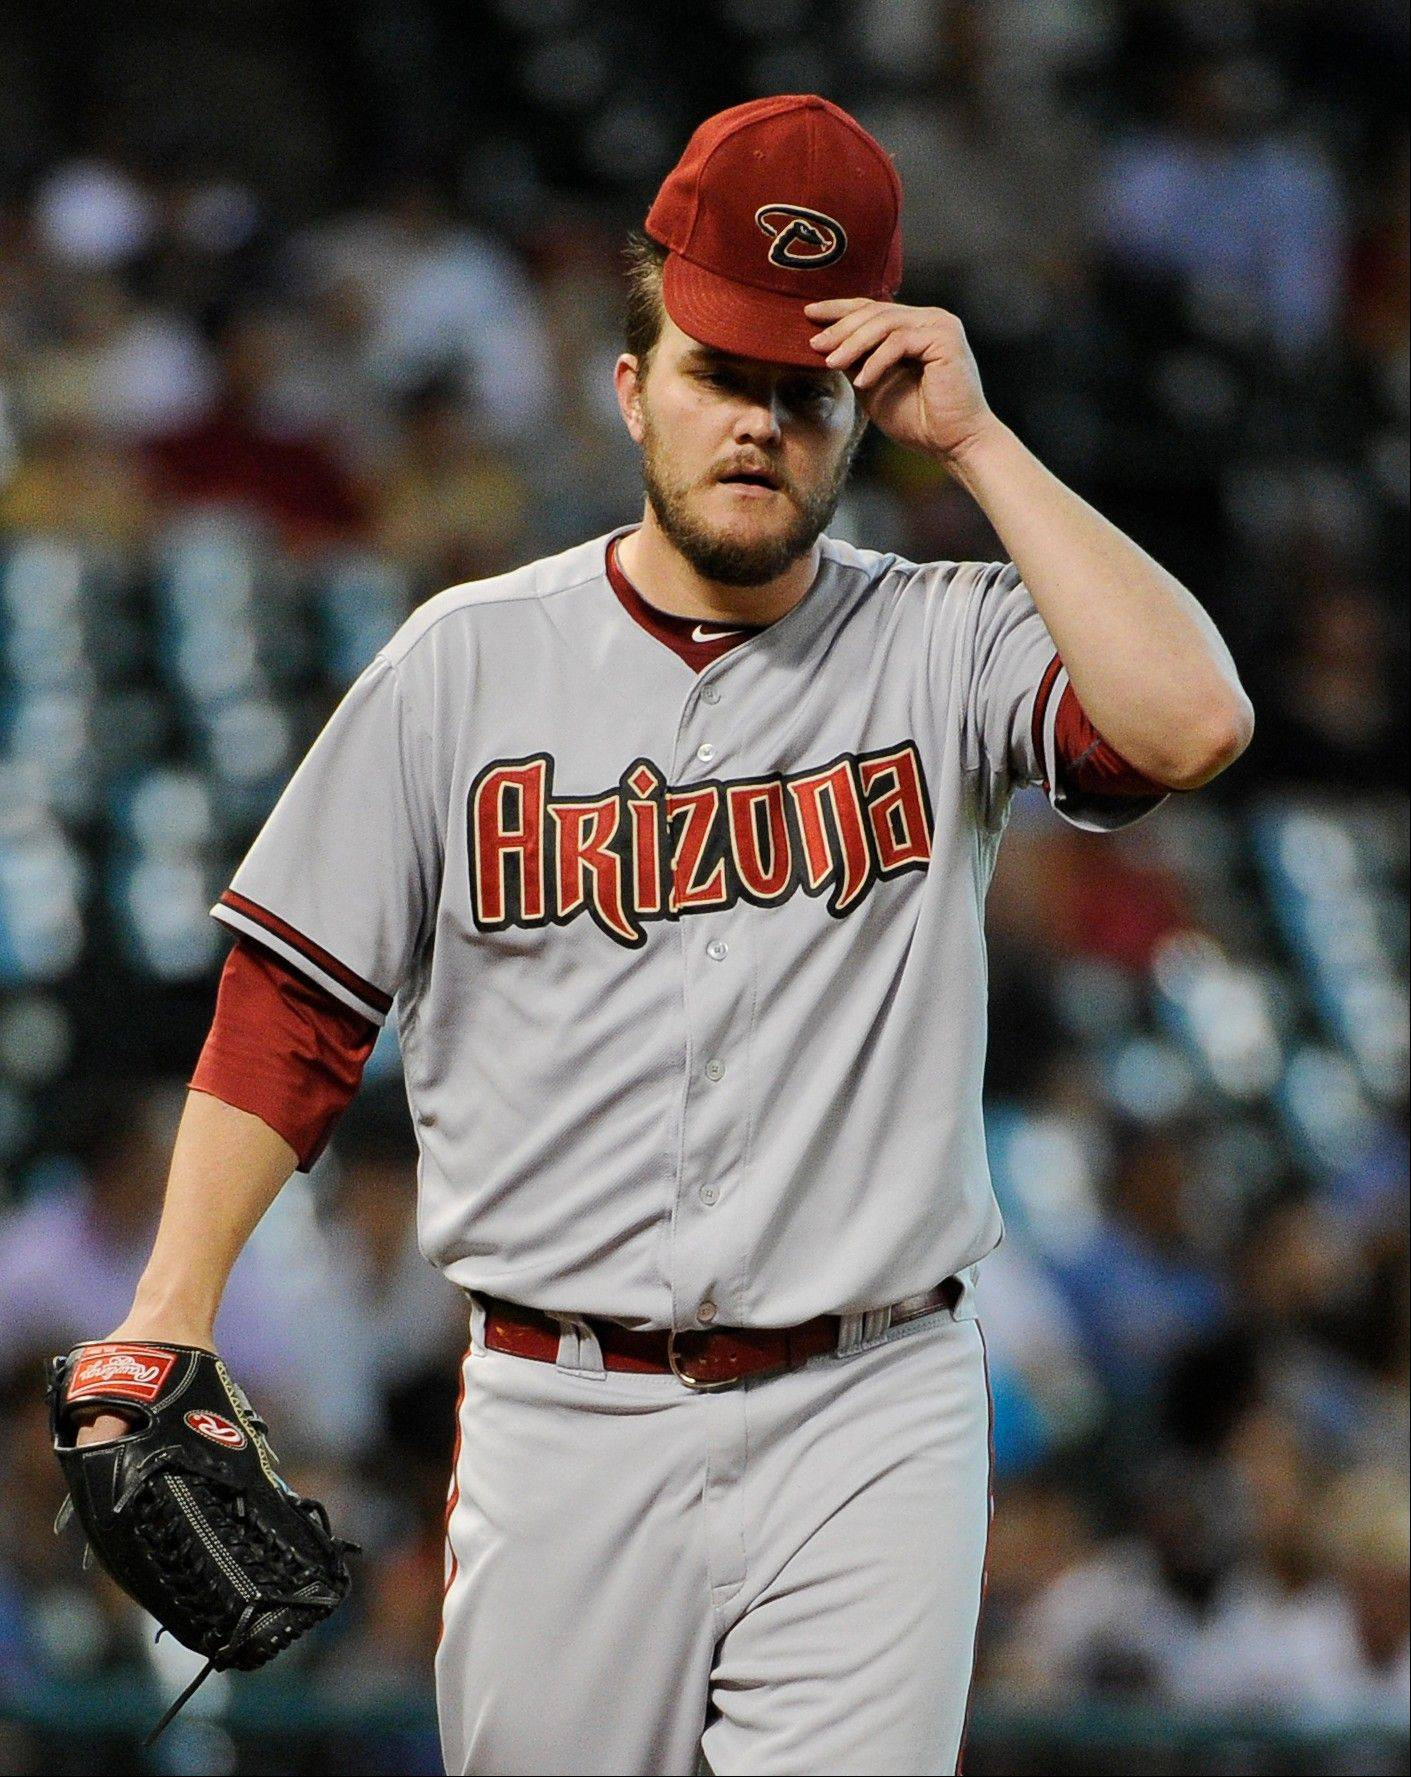 Arizona Diamondbacks pitcher Wade Miley struck out five and walked none Friday in Houston for his first win since July 31.